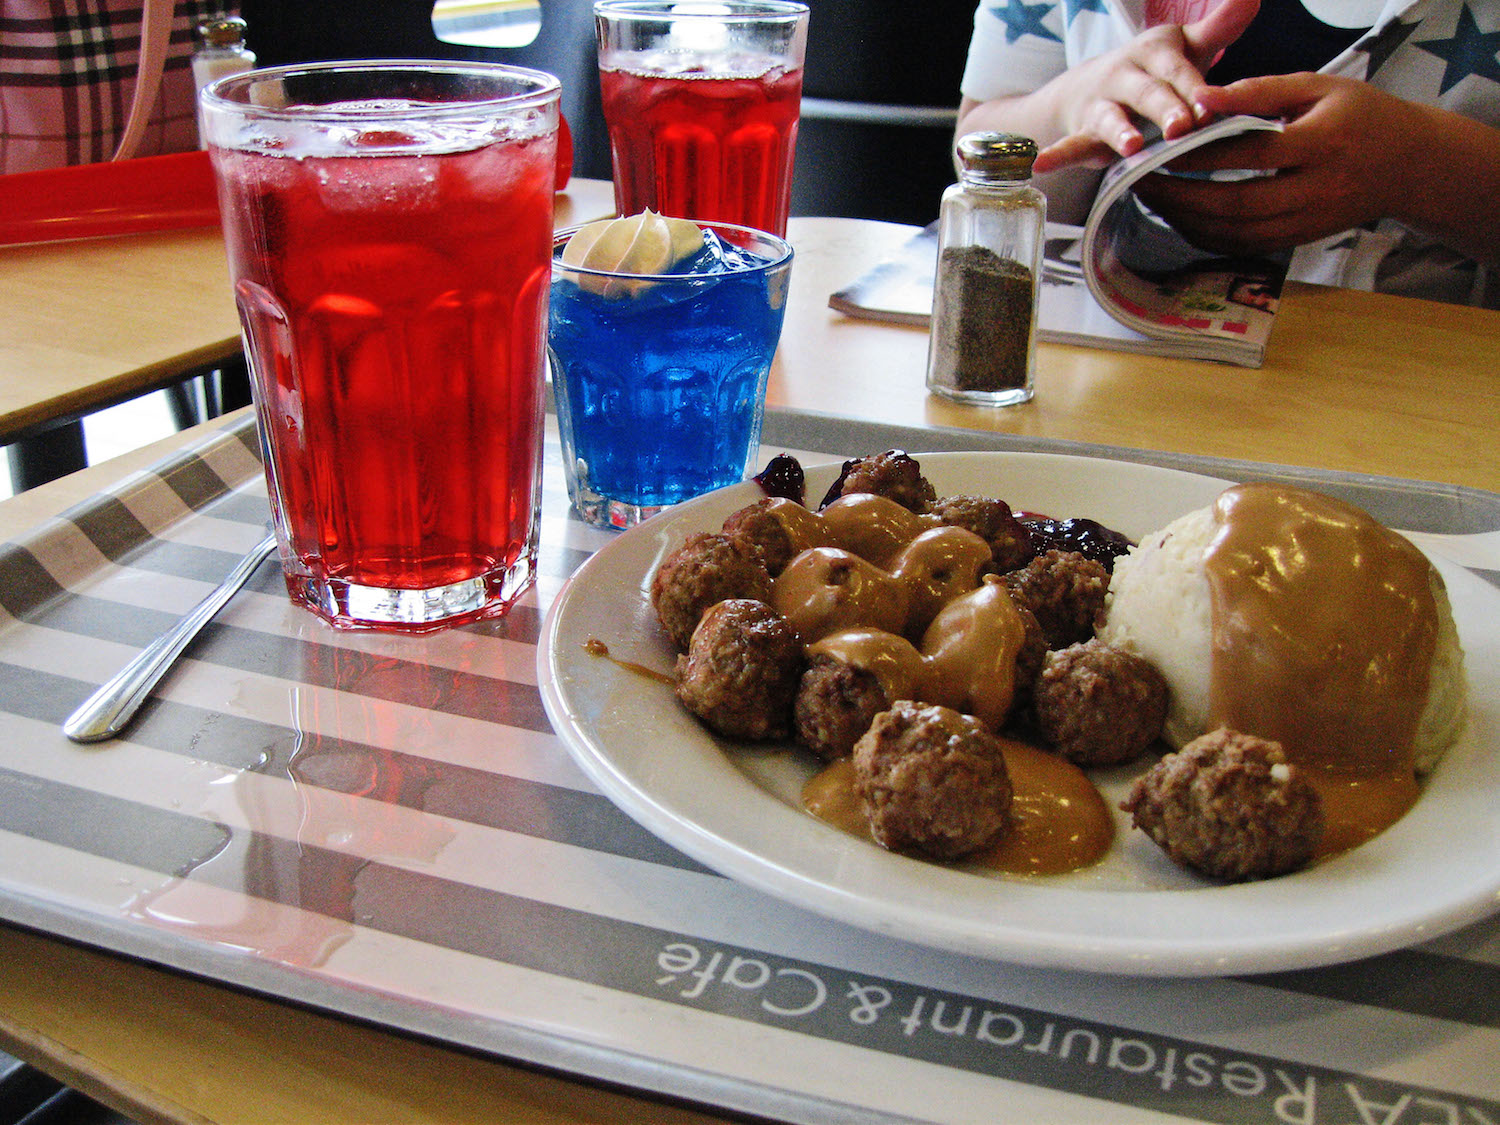 Swedish meatballs at Ikea with lingonberry sauce